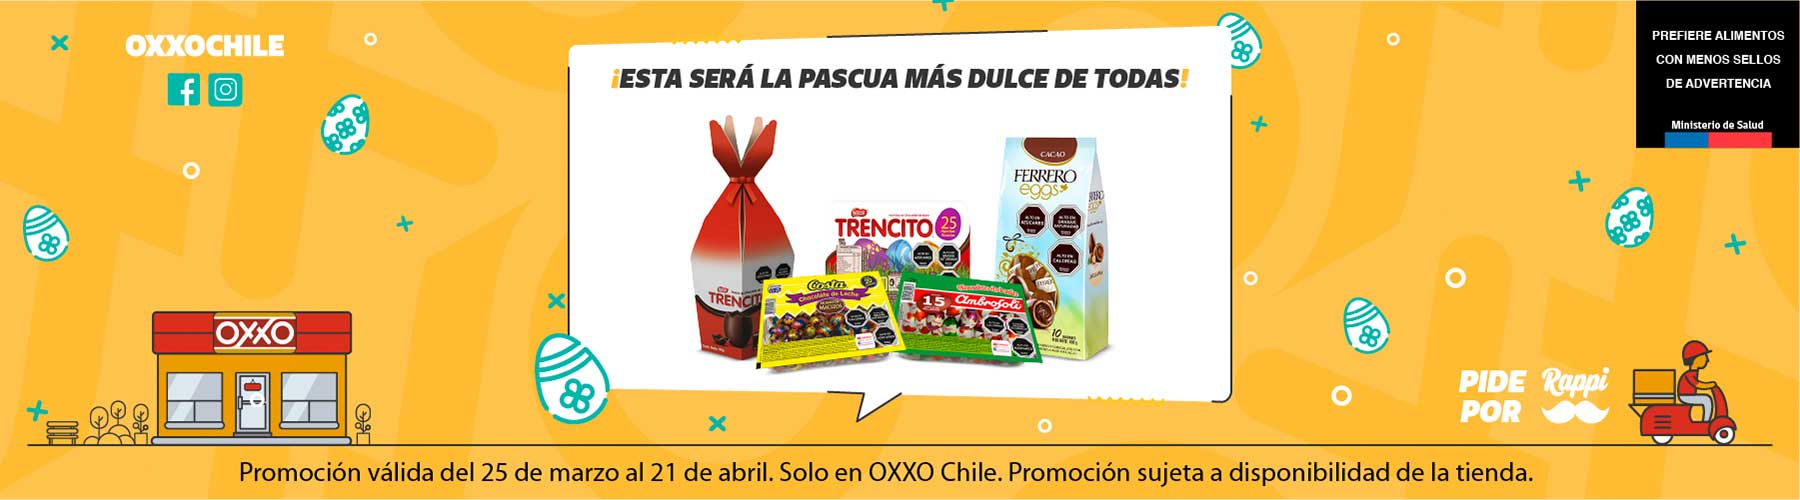 OXXO Chile Home Banner 1 P4 2021